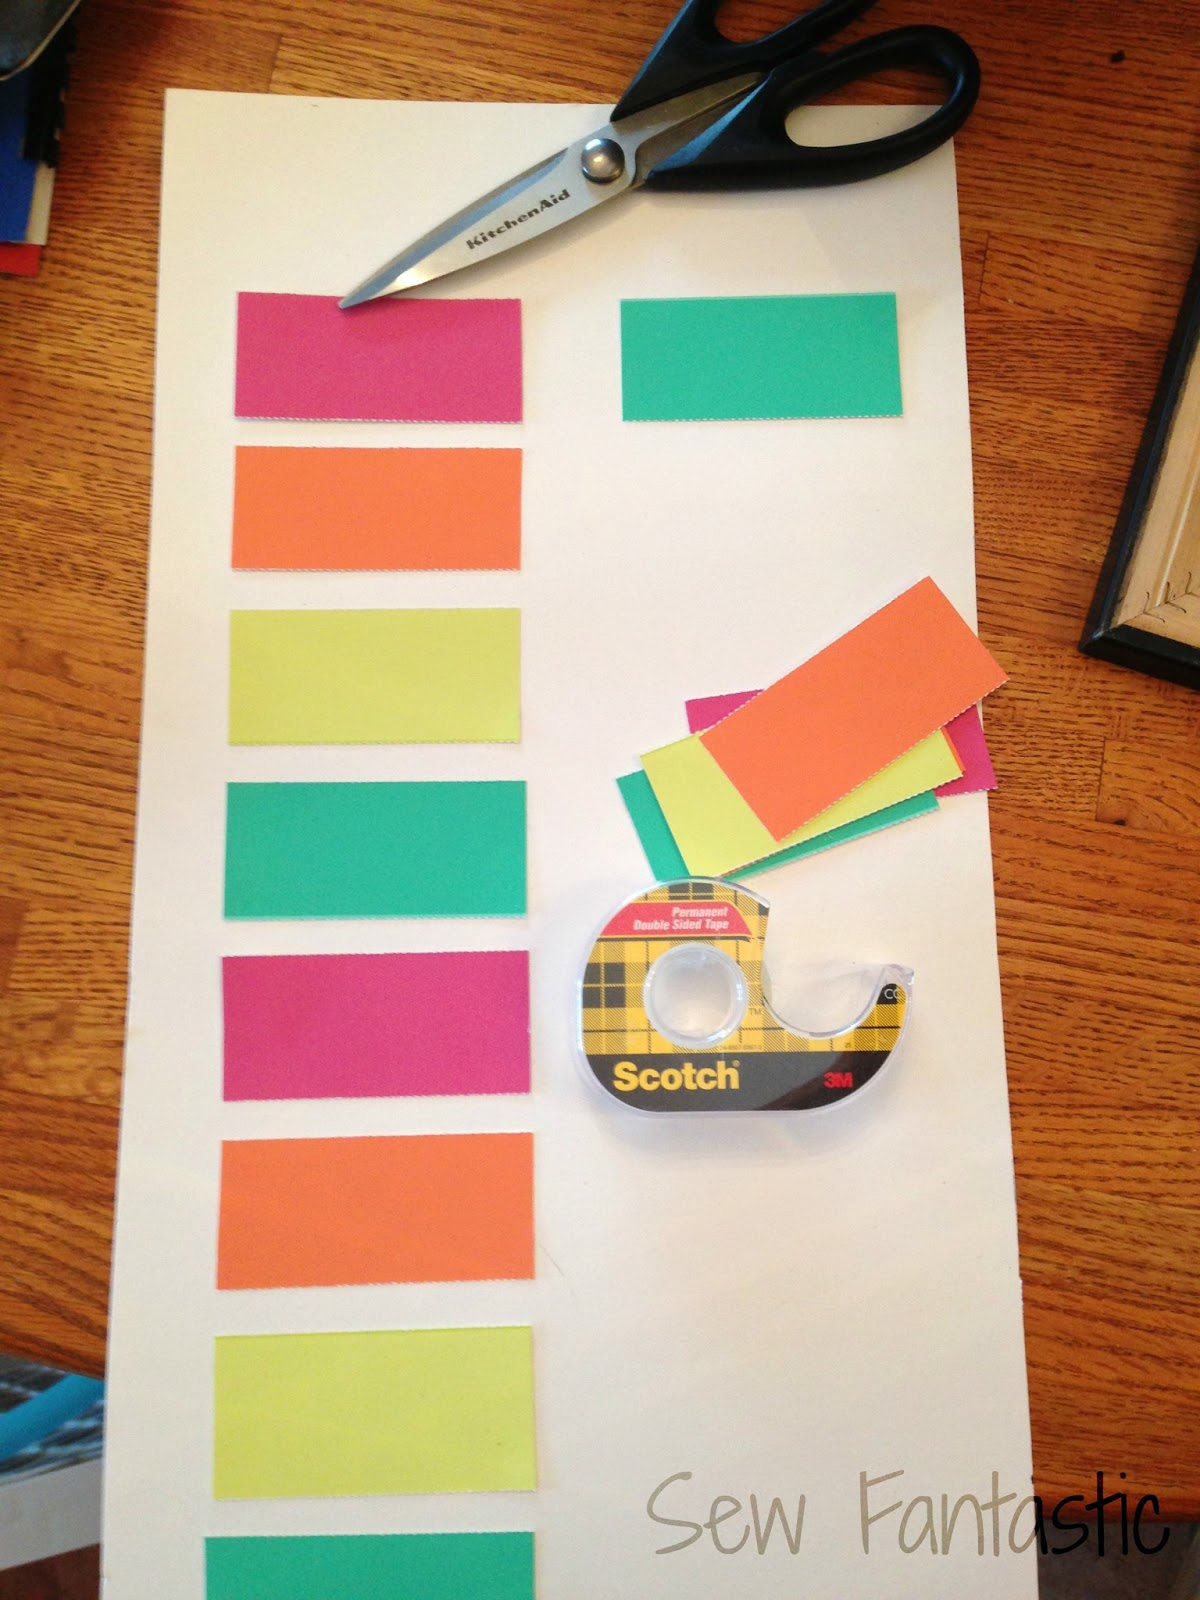 ... off the ends of the paint chips and taped them to the poster board